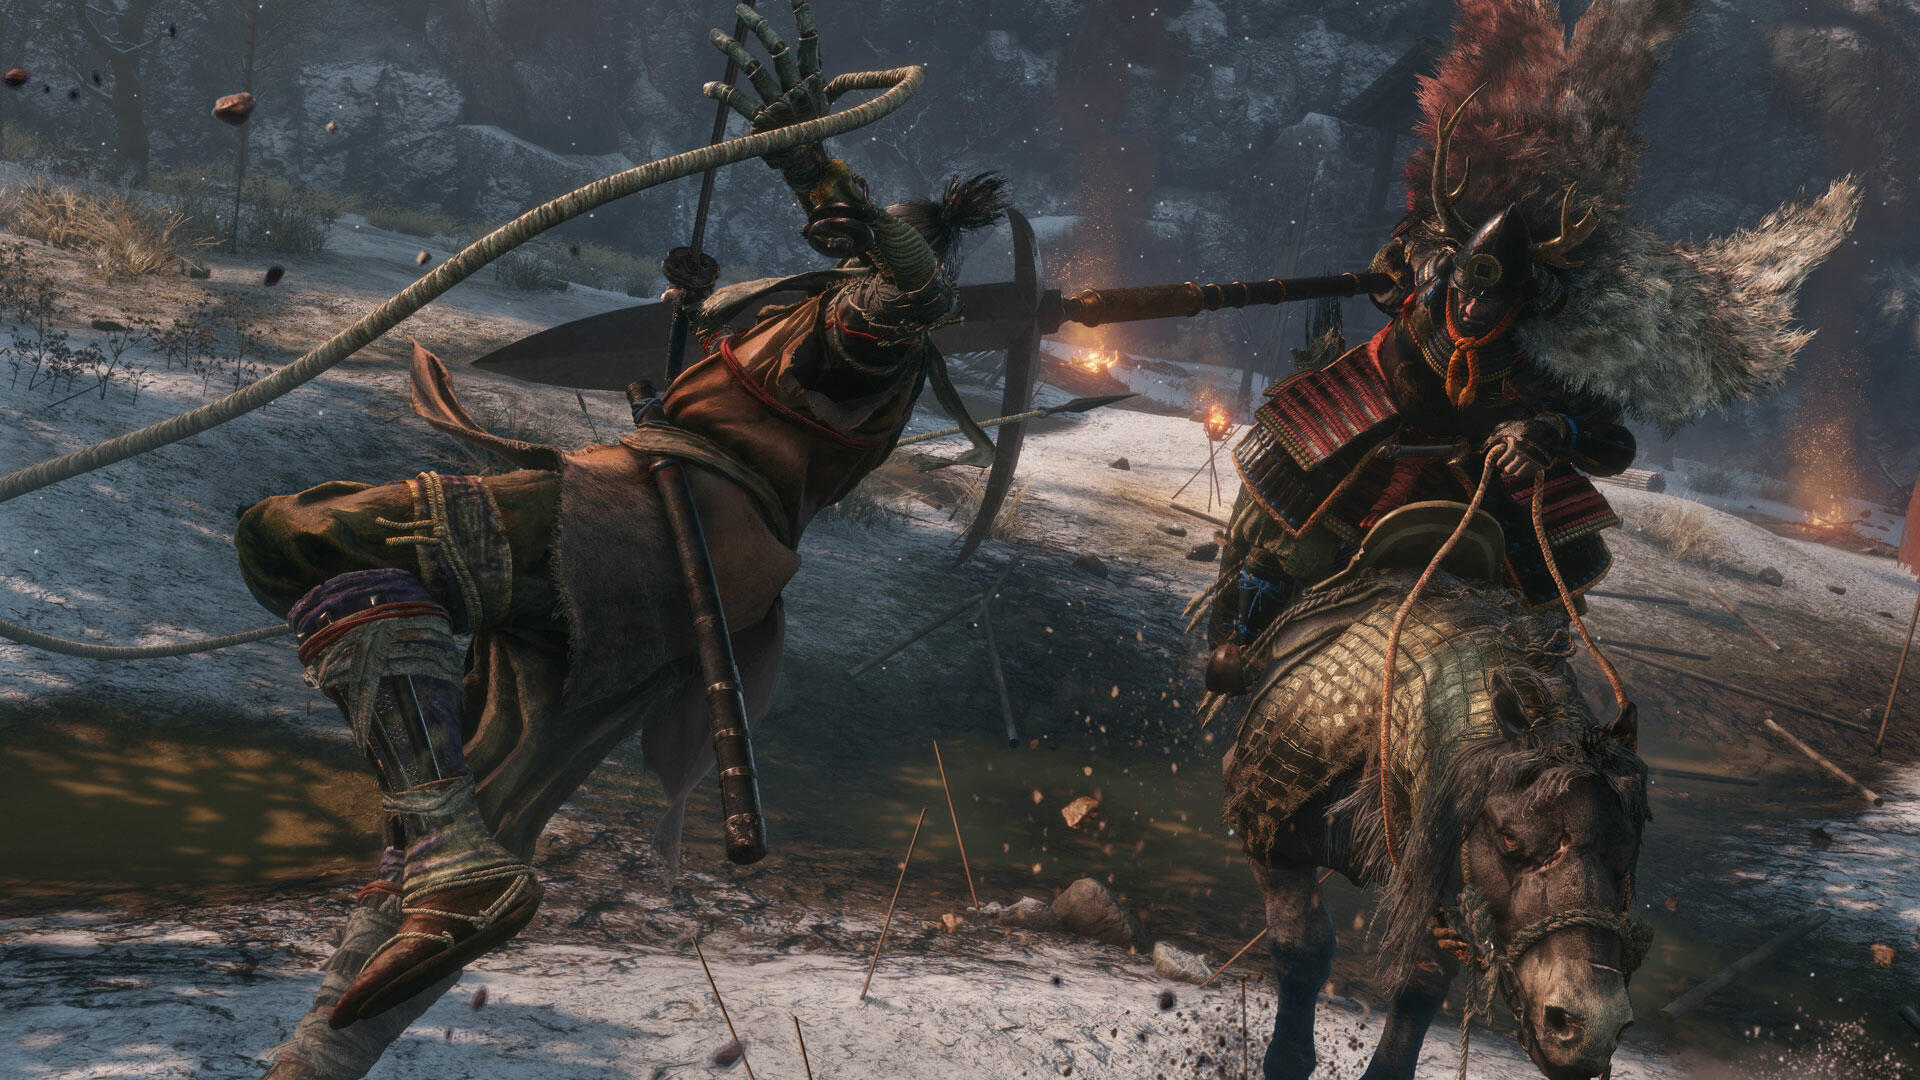 The Lineup for Awesome Games Done Quick 2020 Includes Sekiro, Final Fantasy 8, and a Destiny 2 Raid